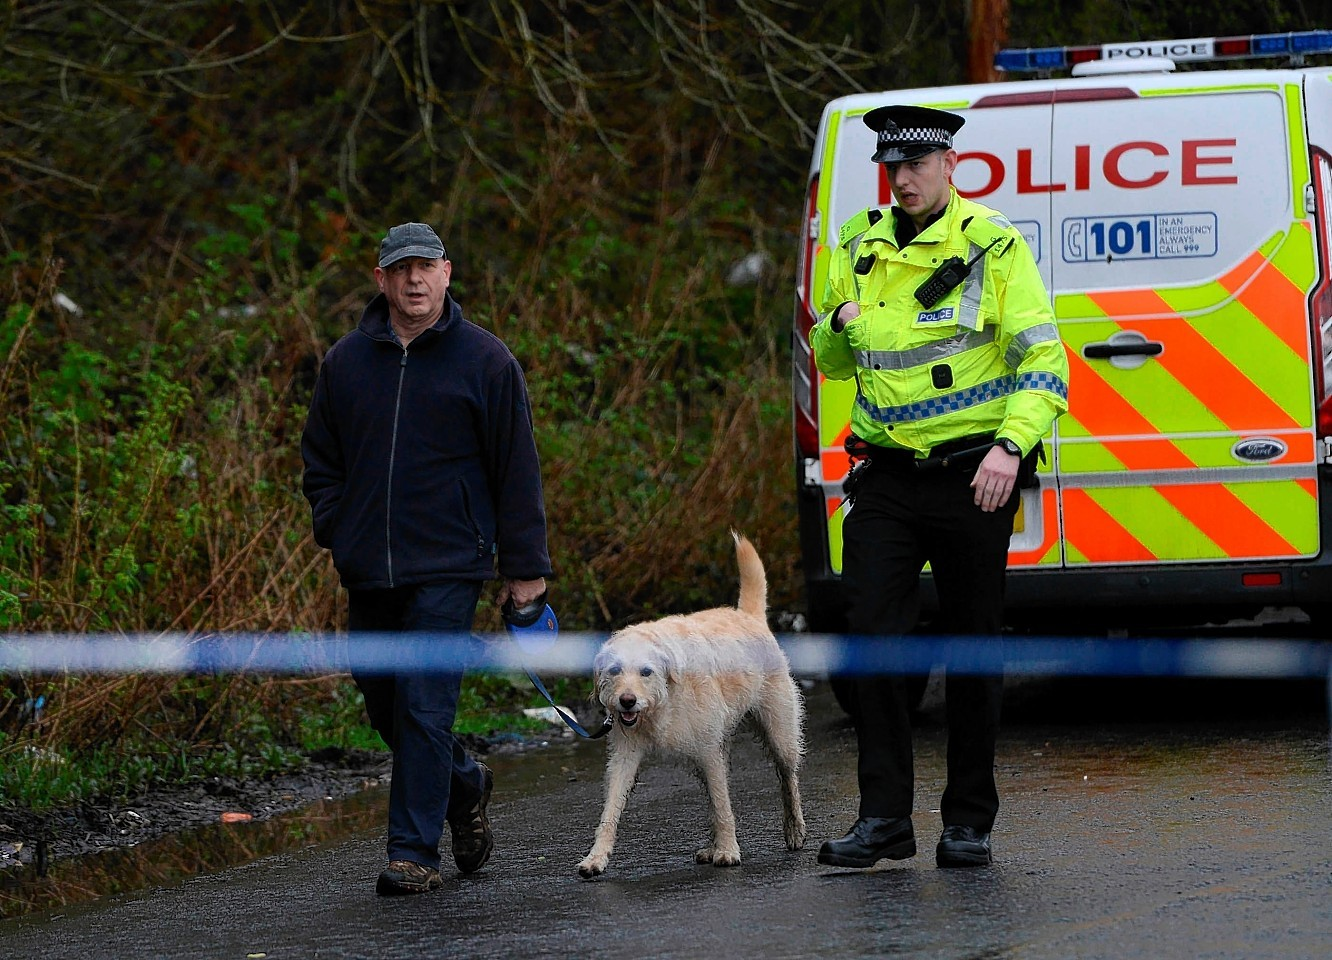 Police continue to search Dawsholm Park, Glasgow, April 15, 2015, where police say the hand bag of missing Irish student Karen Buckley, 24, was found